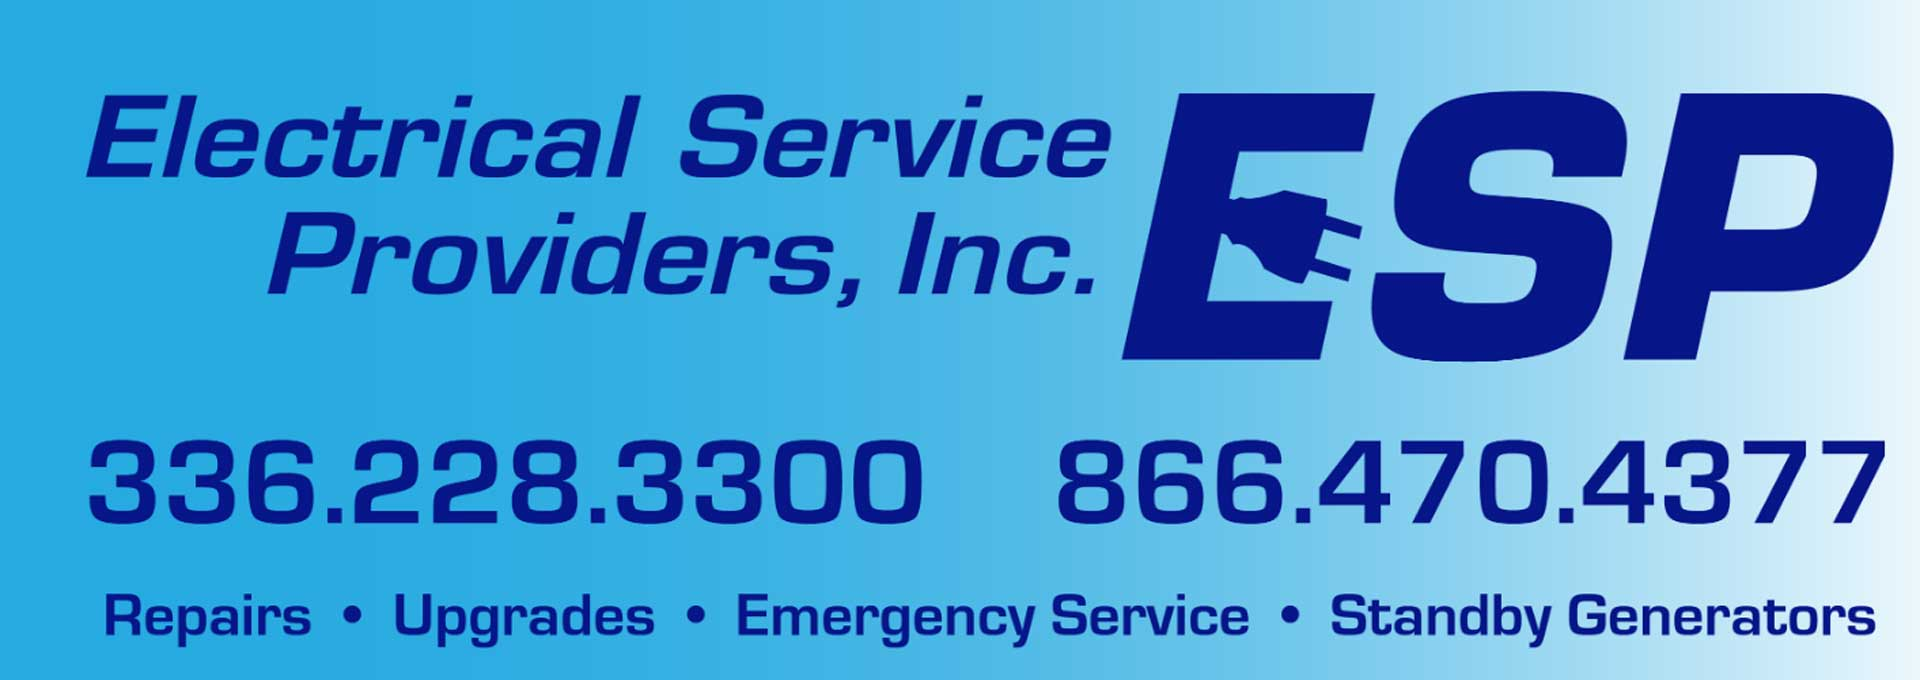 electrical srevice providers